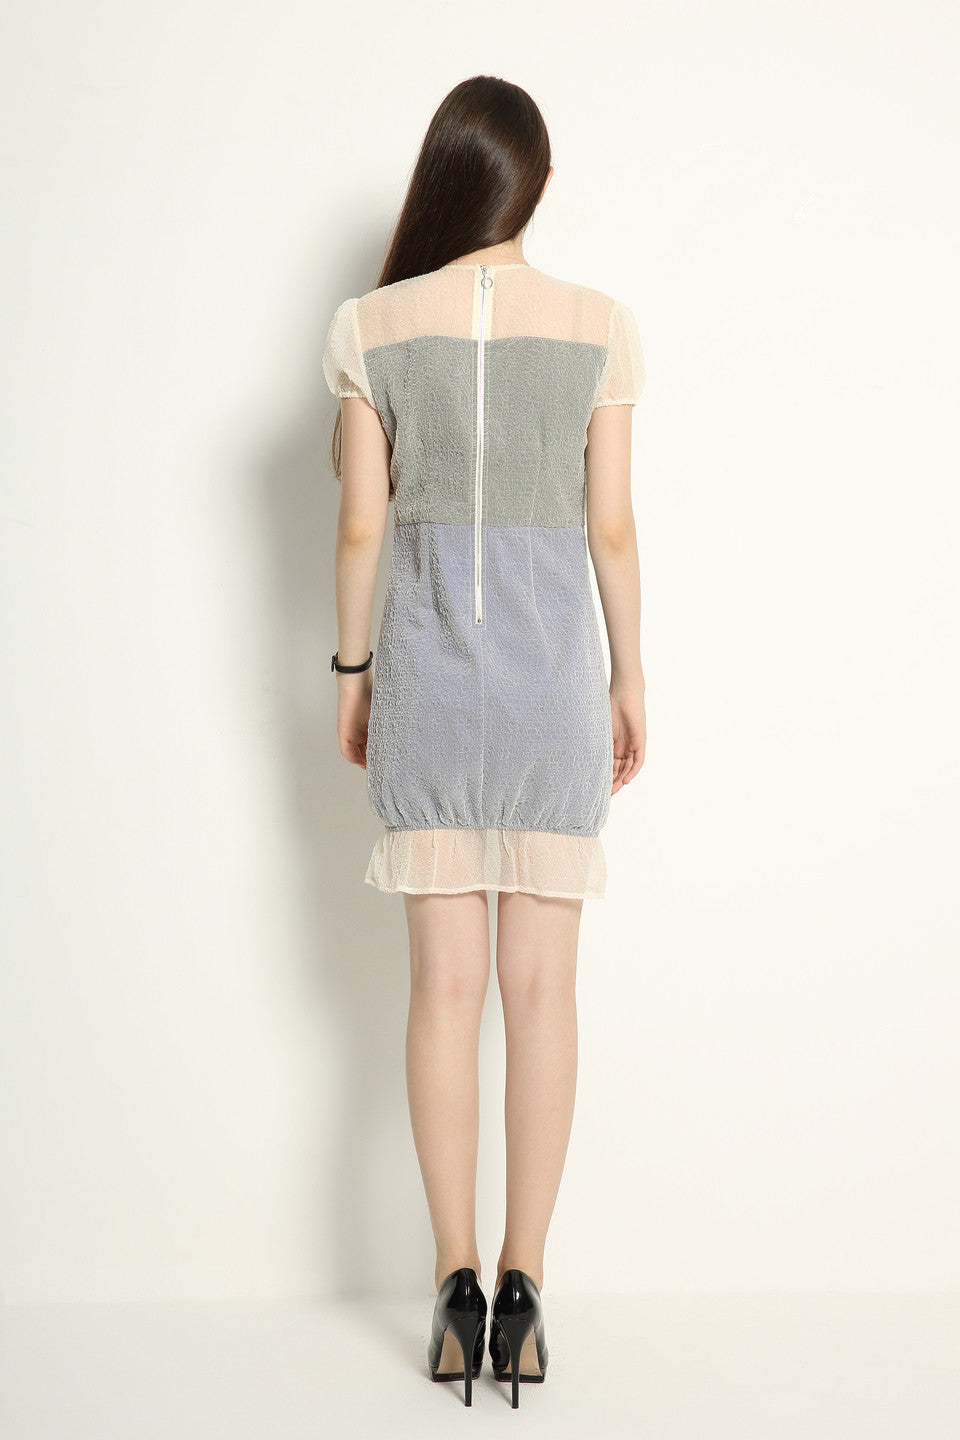 Organza Double Layered Contrast Dress - GlanceZ   - 6